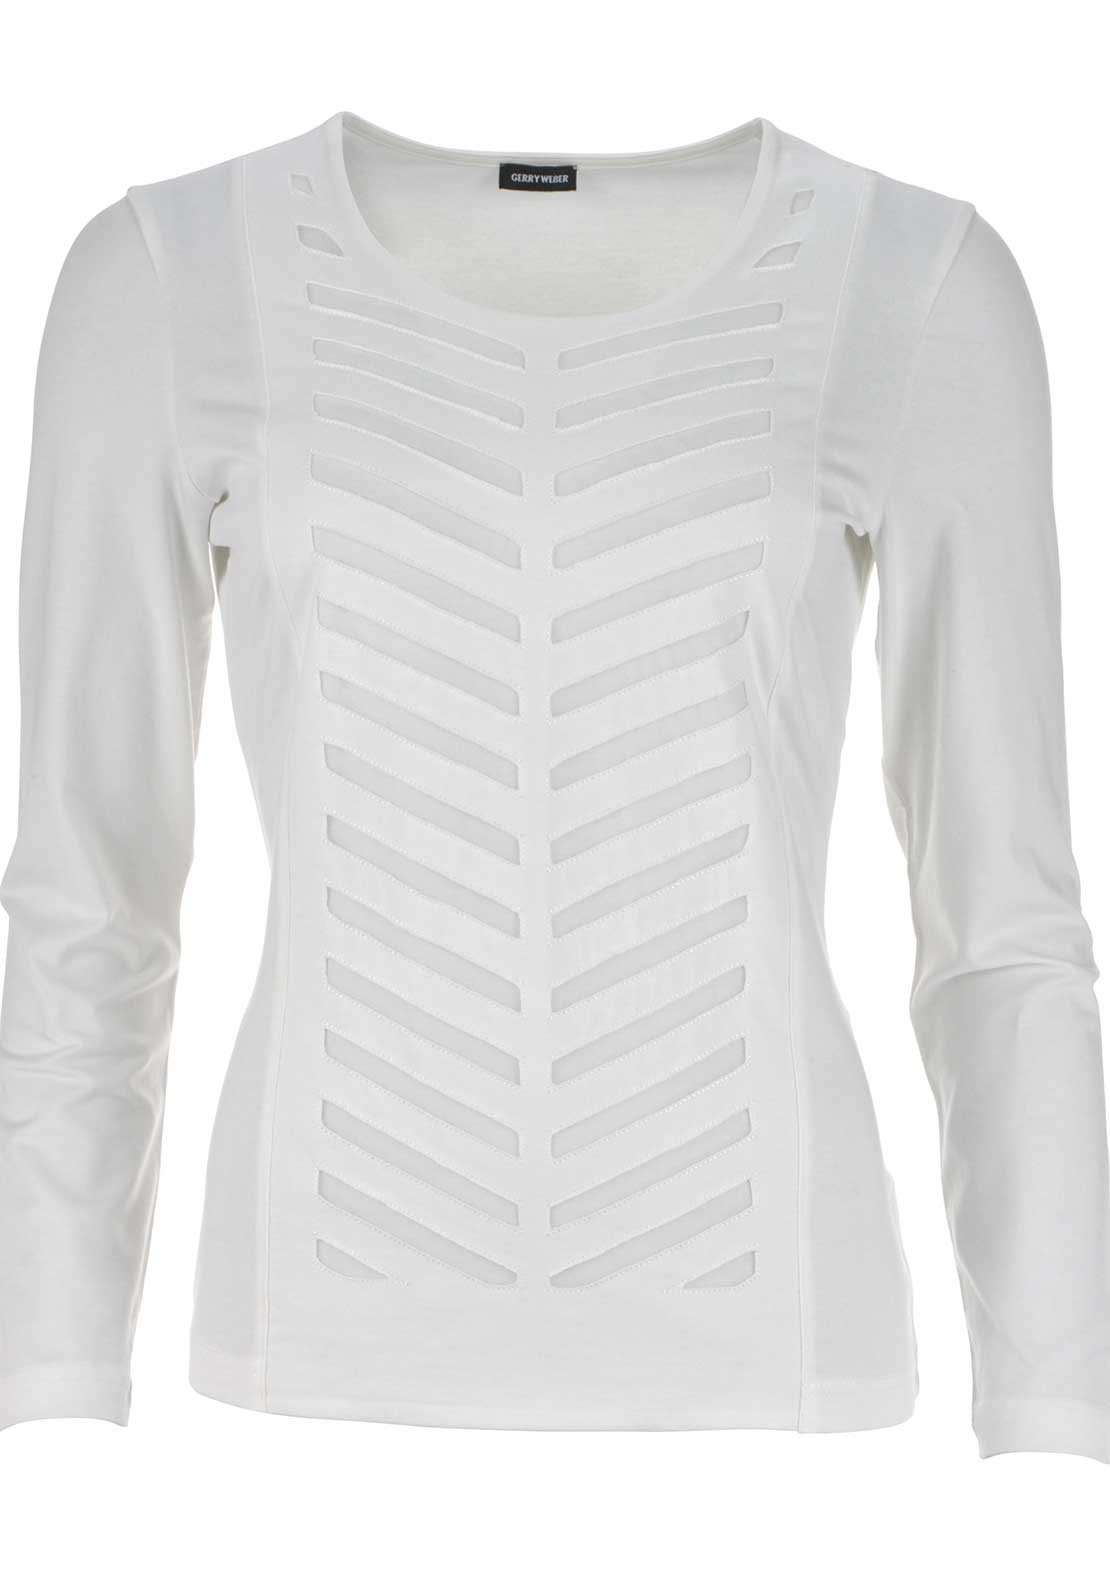 Gerry Weber Mesh Print Long Sleeve Top, Ivory